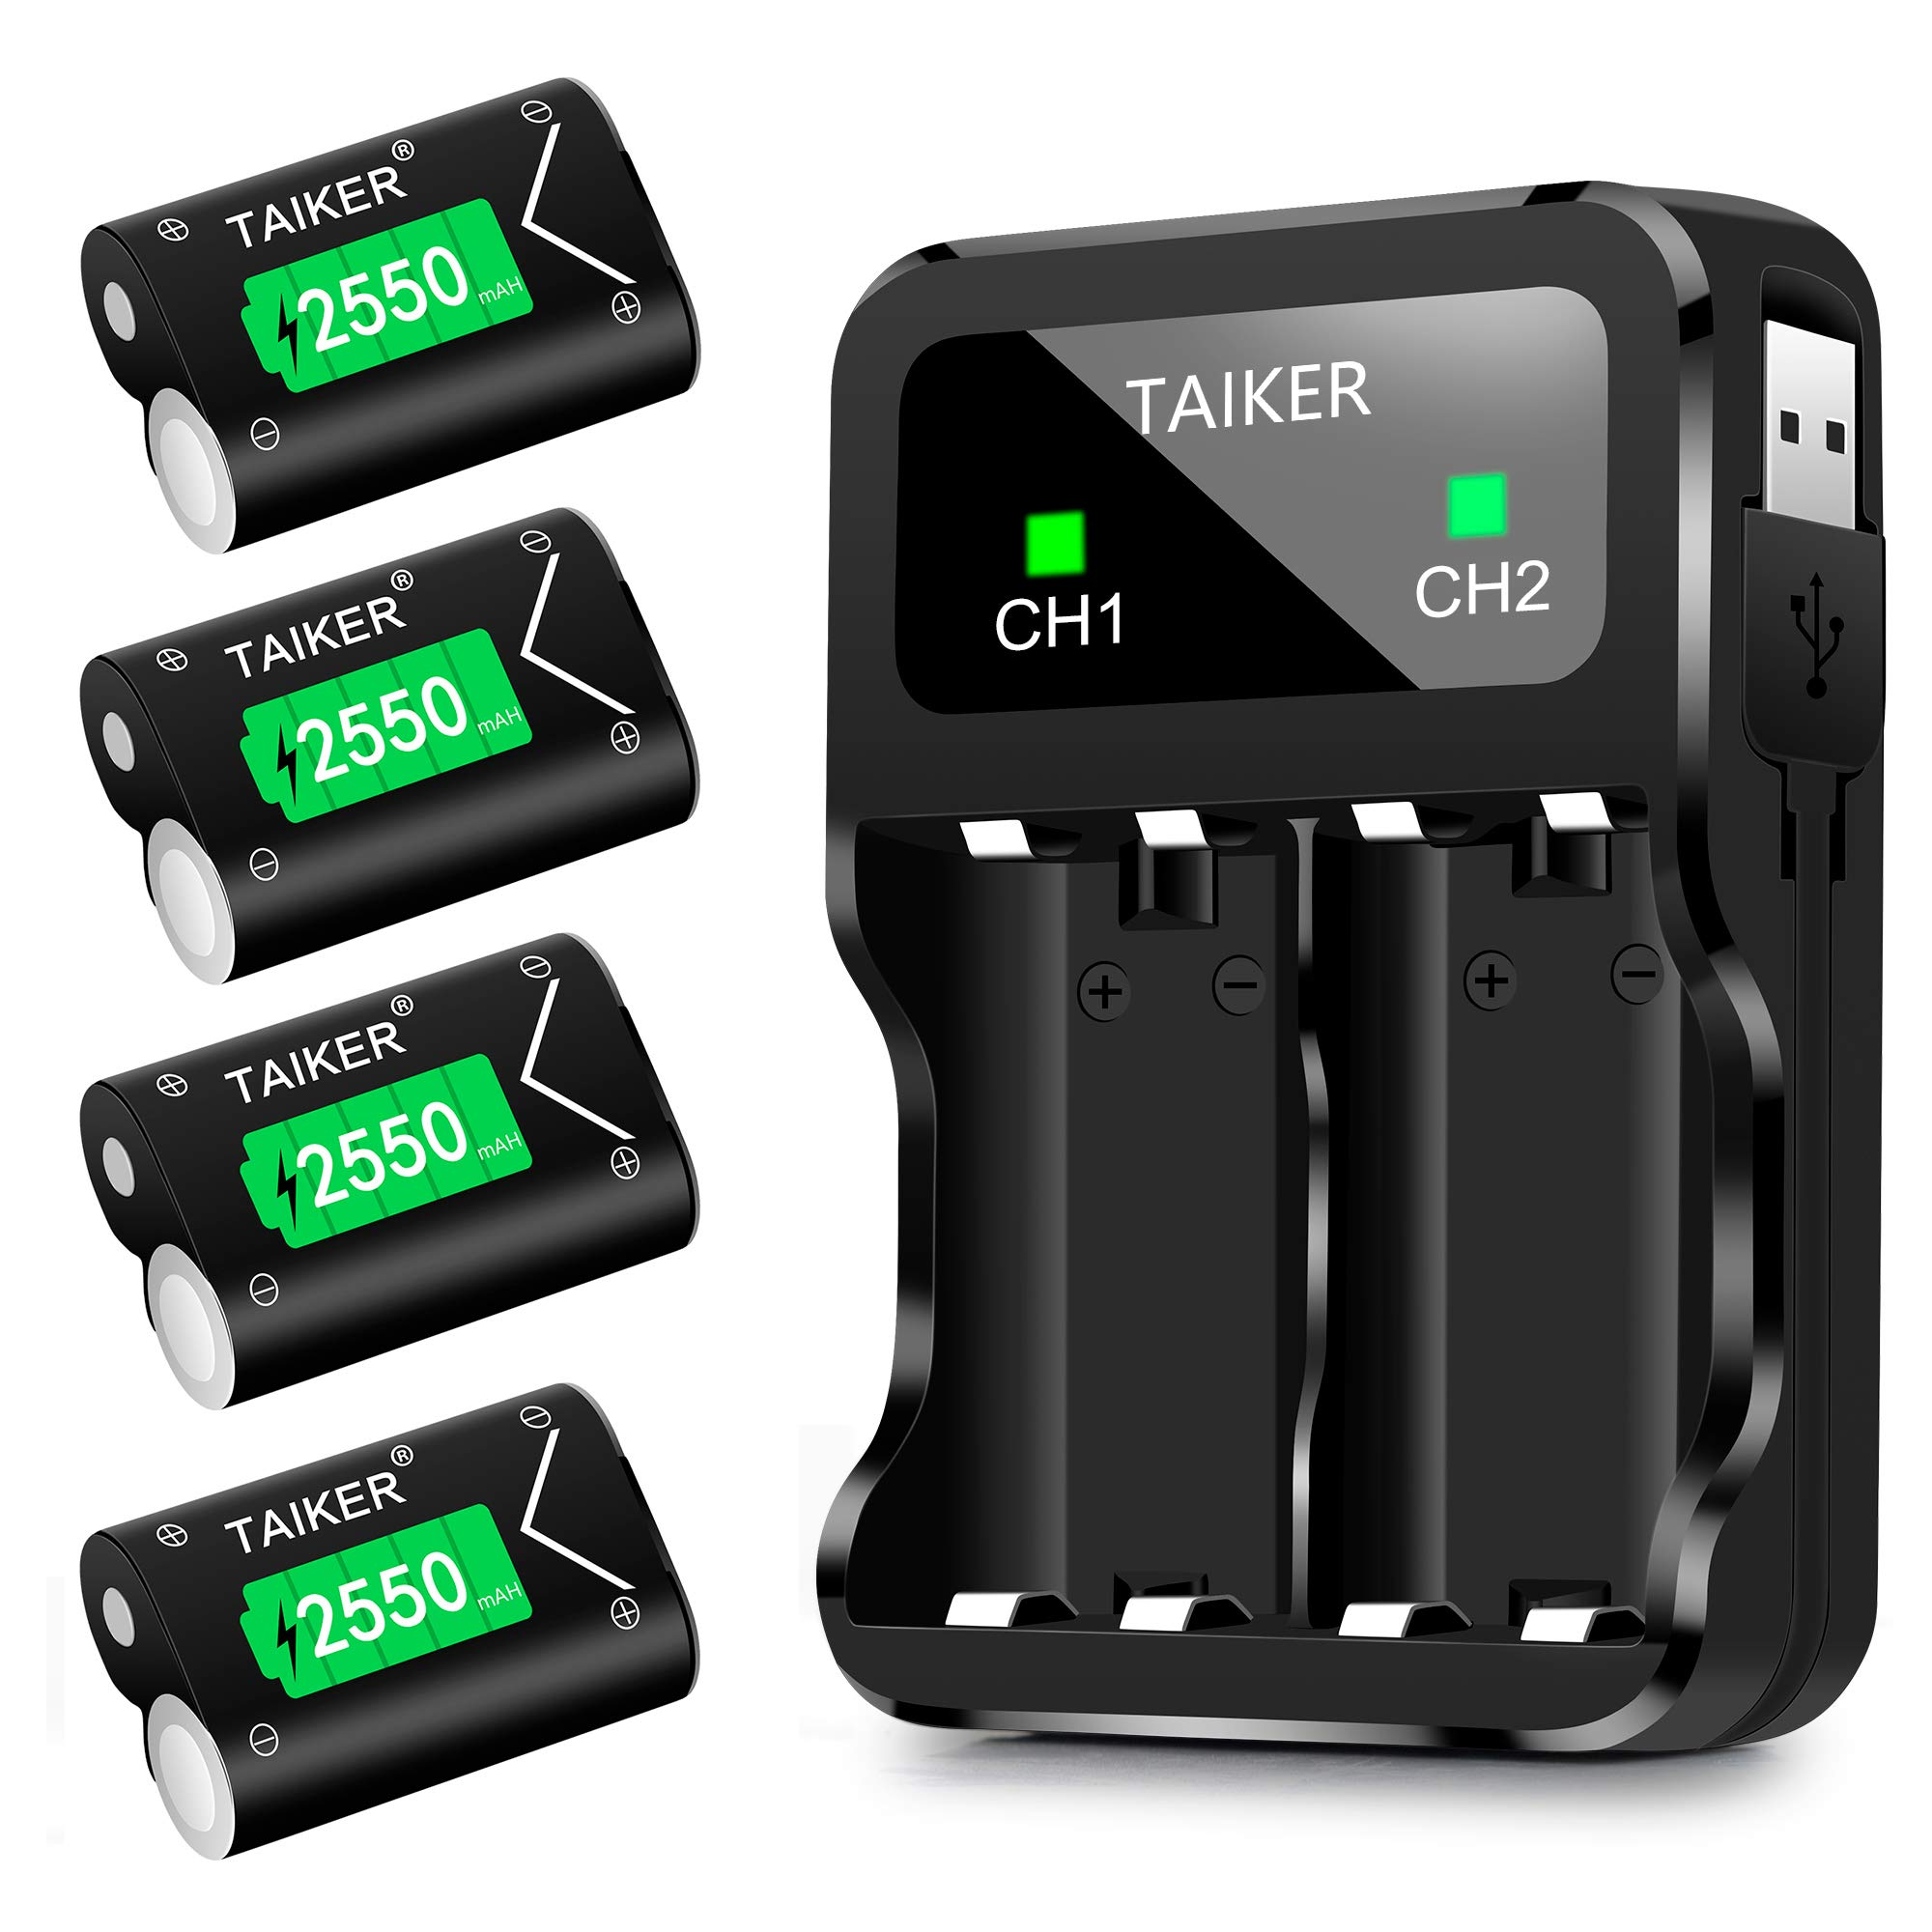 TAIKER Compatible with Xbox One Battery 4 Pack x 2550mAh Rechargeable Controller Battery and Charger for Xbox One/Xbox One S/Xbox One X/Xbox One Elite Wireless Controller by Taiker